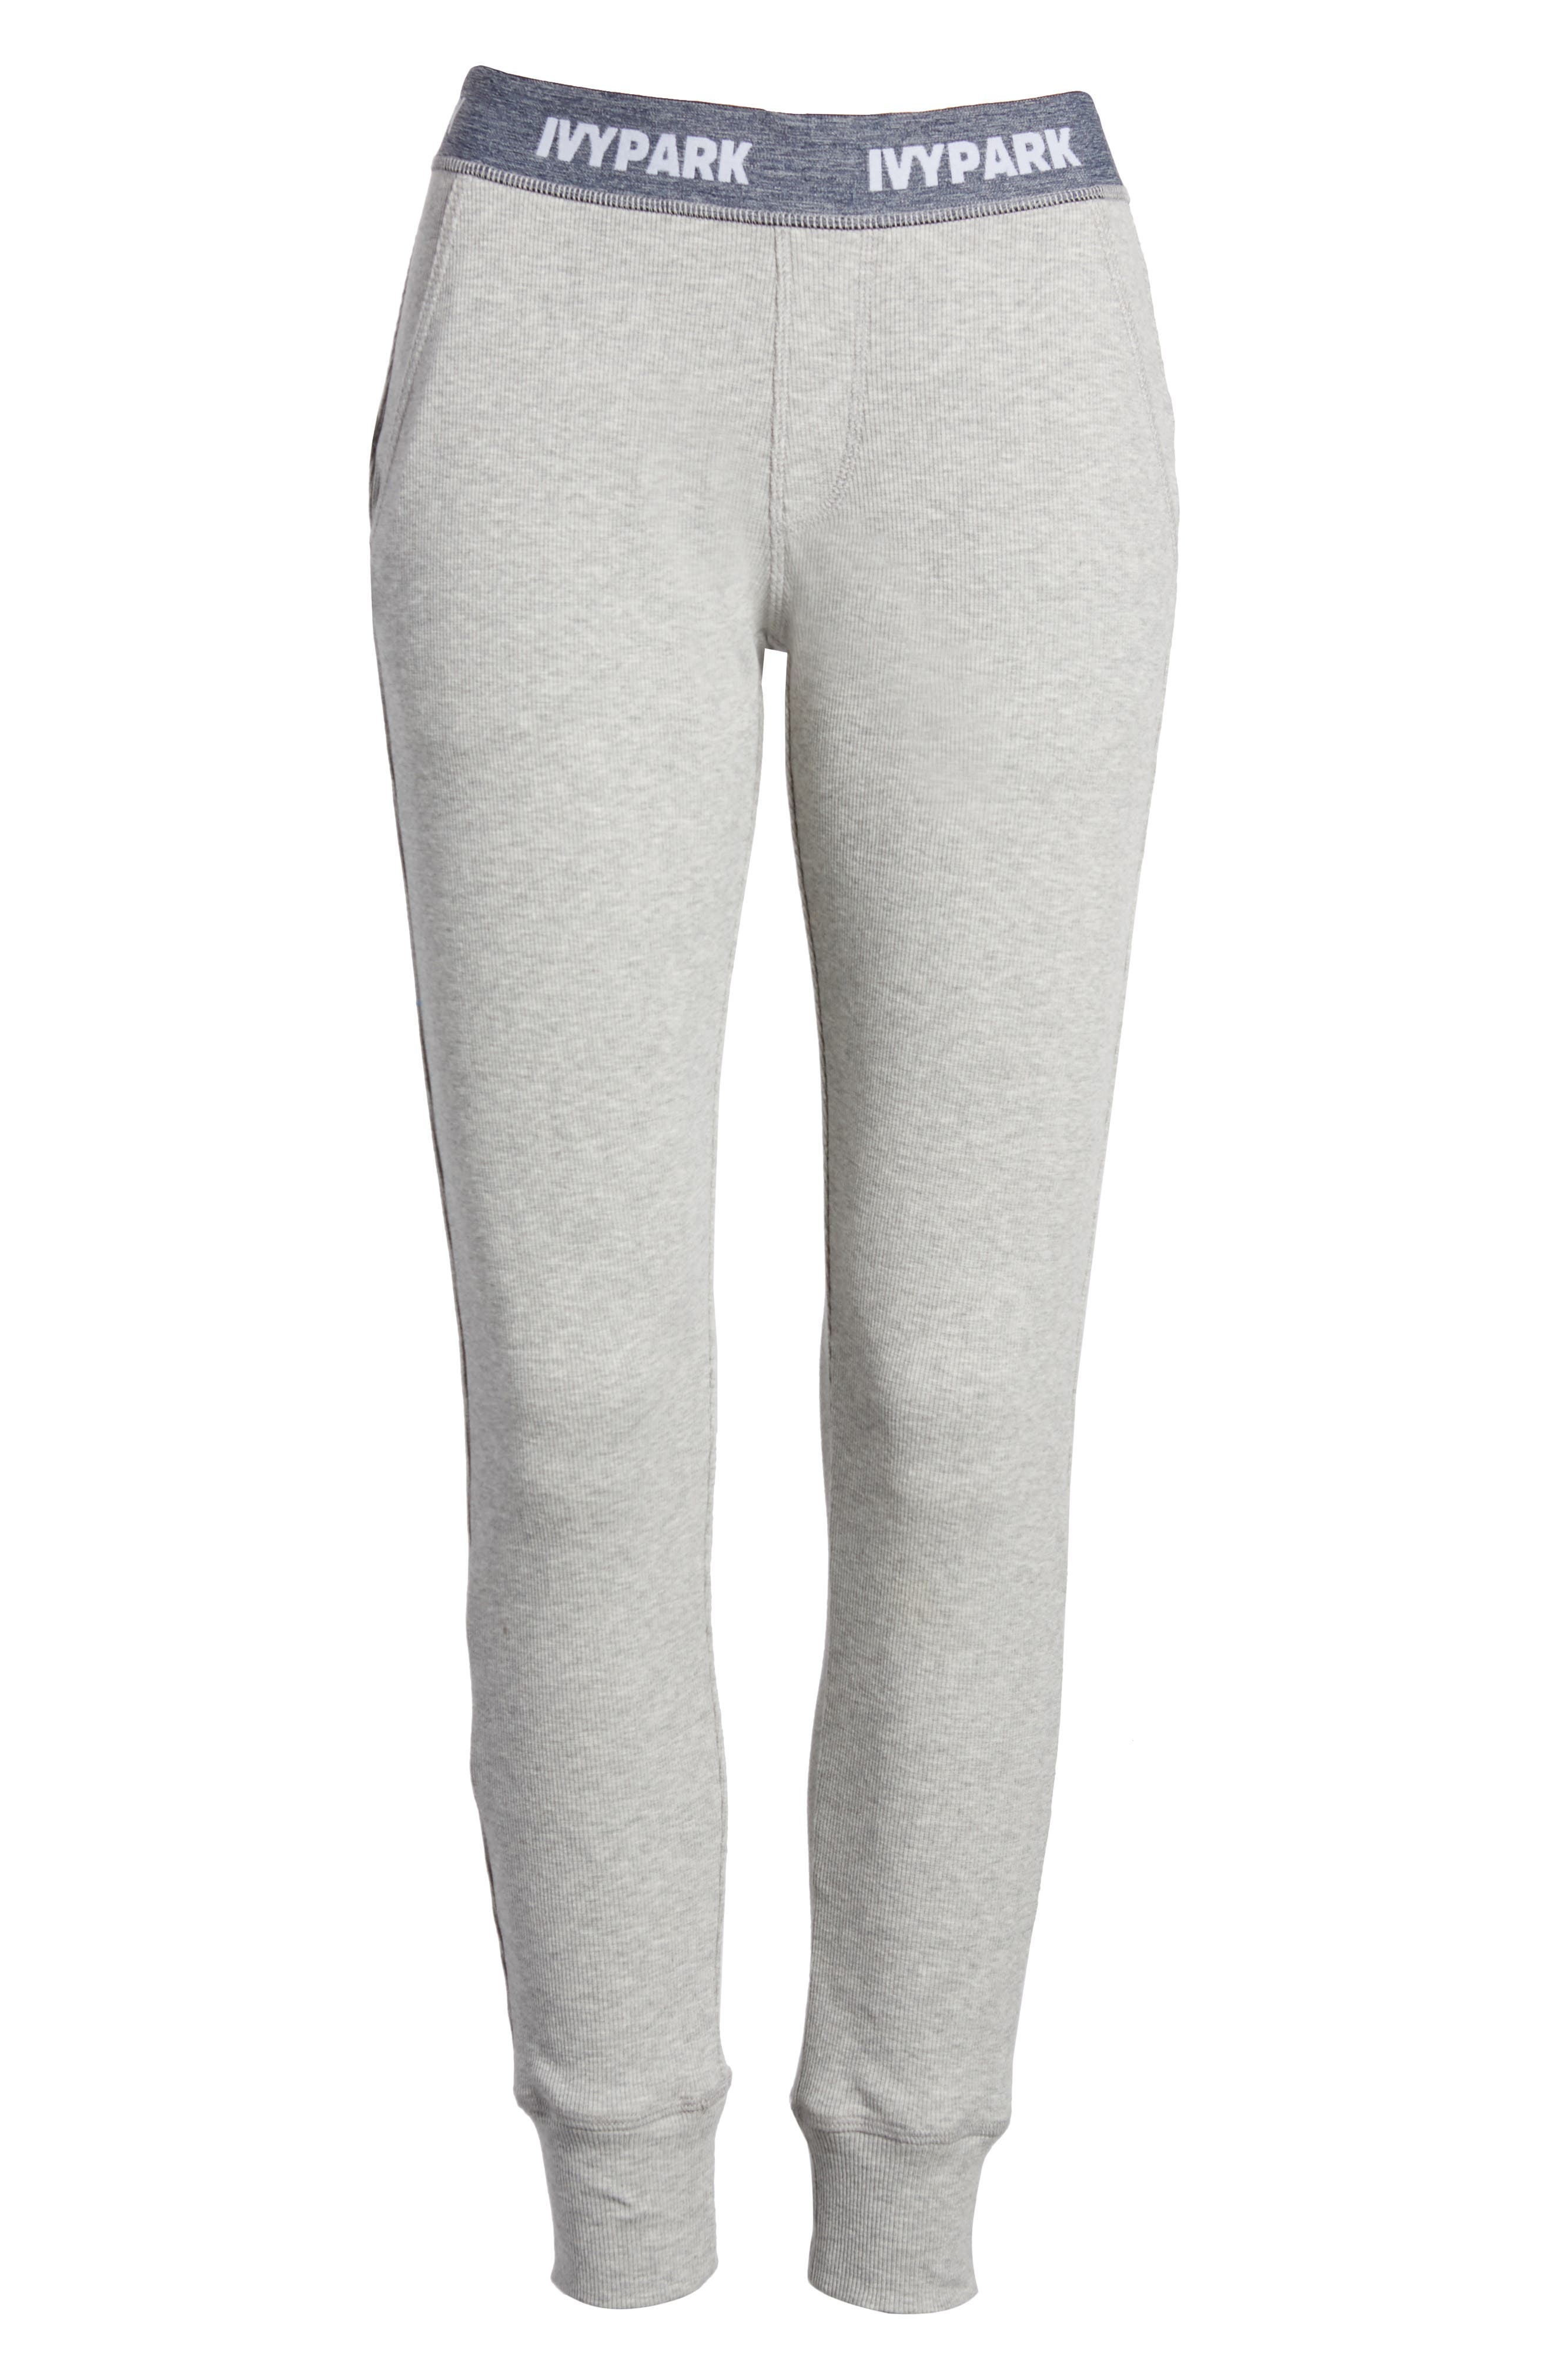 Loose Fit Marl Rib Leggings,                             Alternate thumbnail 7, color,                             Grey Marl